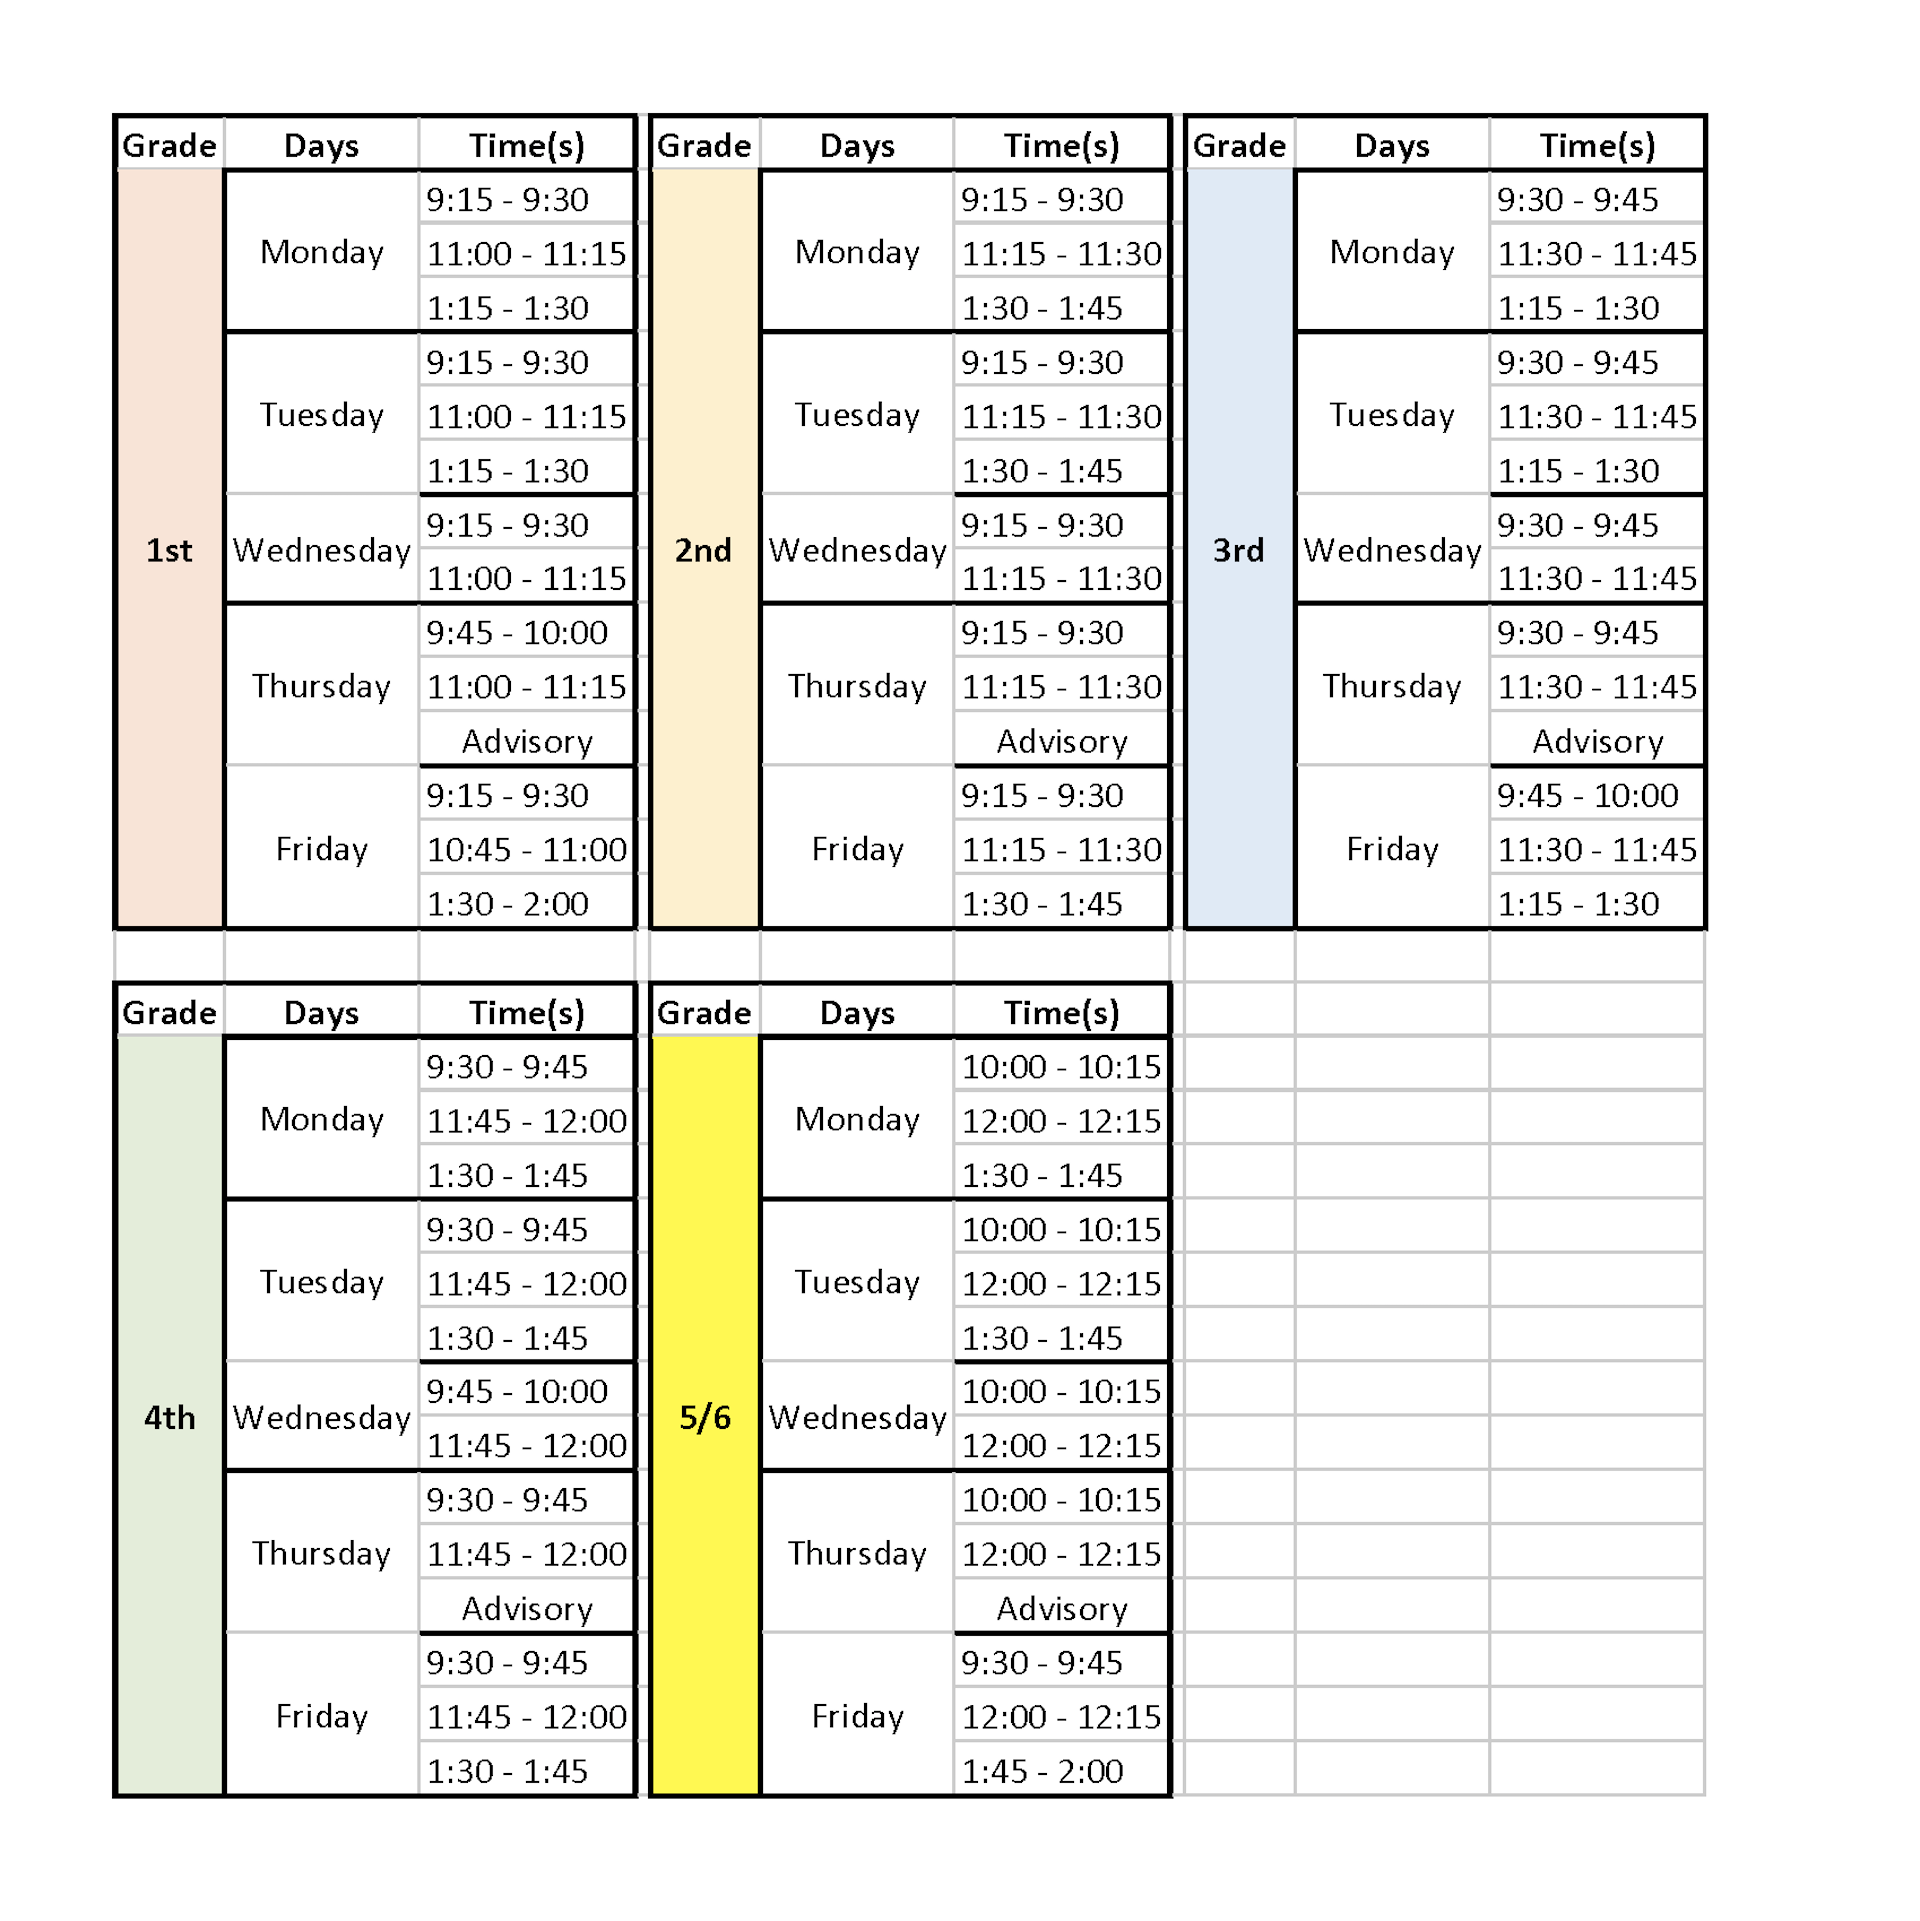 recess schedules in a table